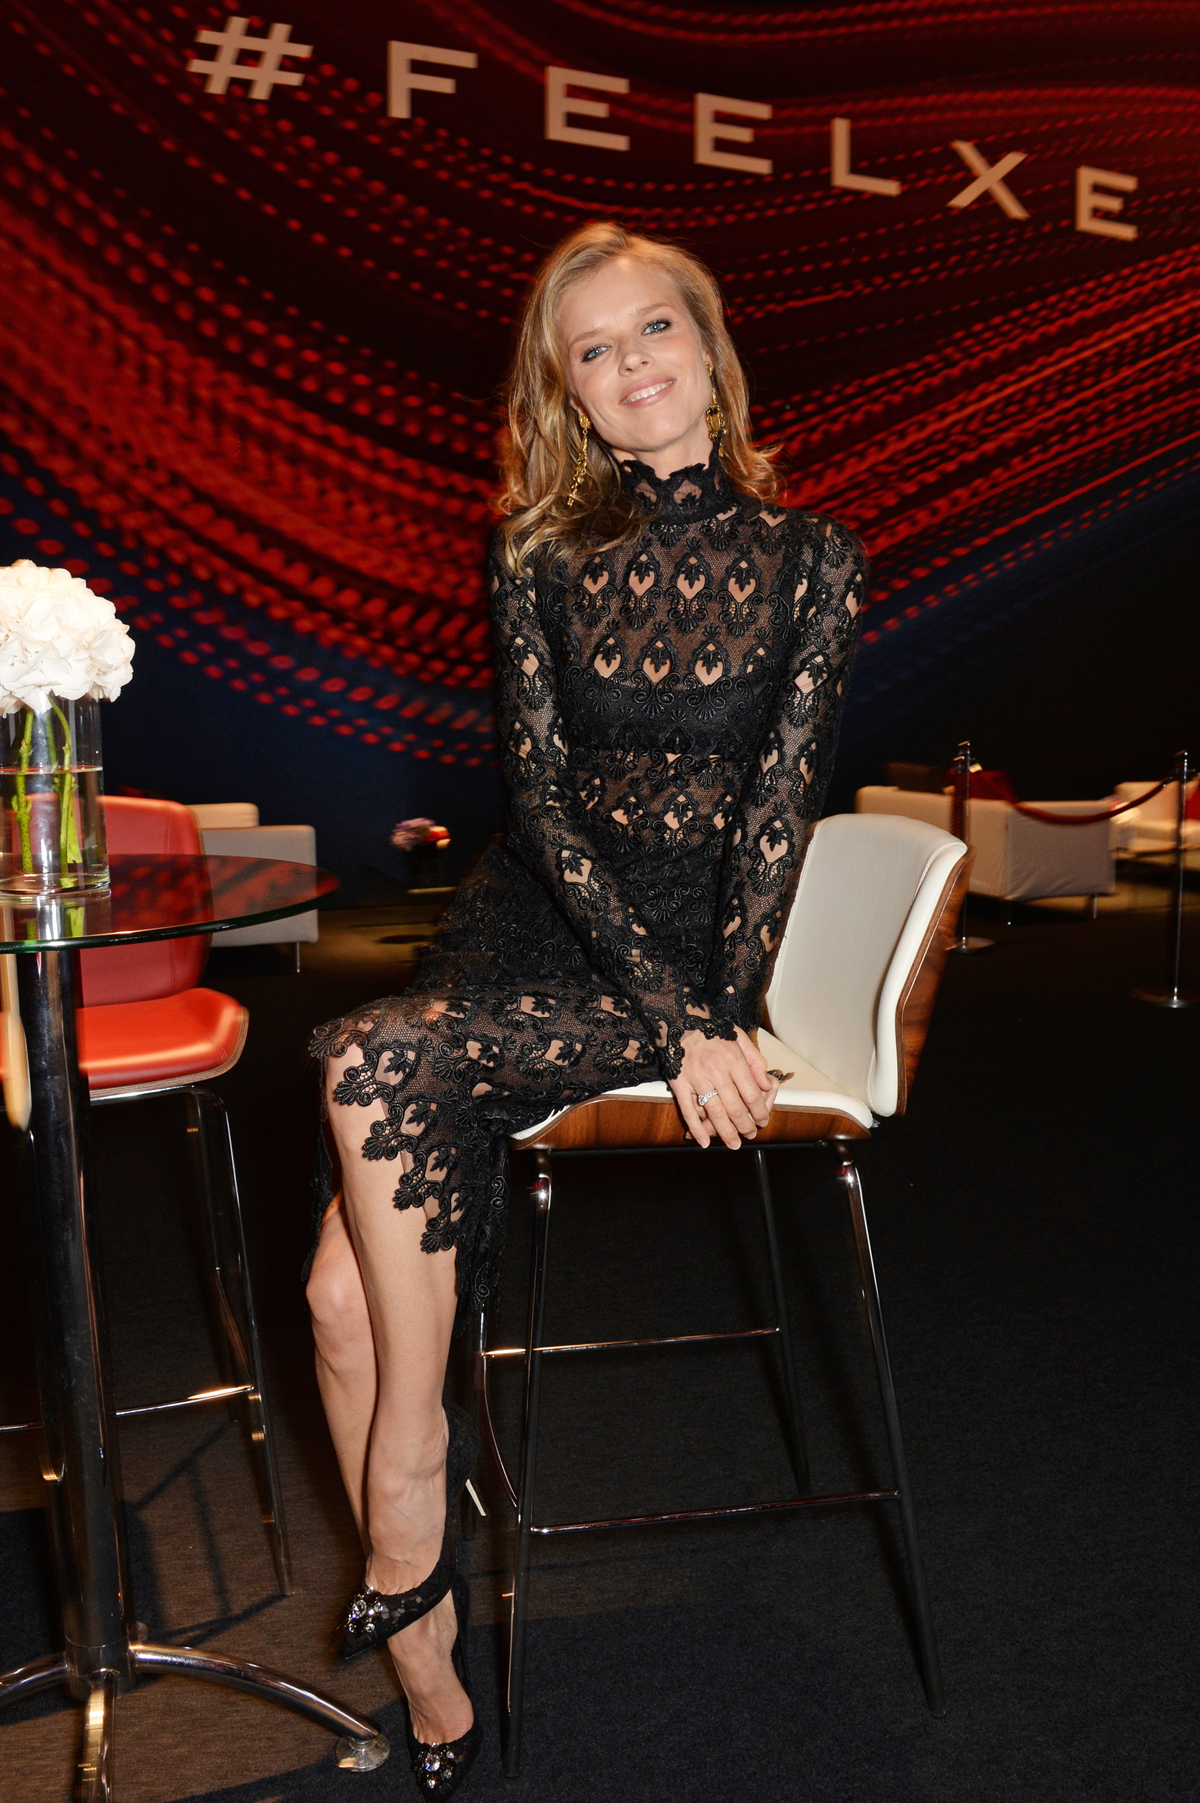 Eva Herzigova at Jaguar XE launch party